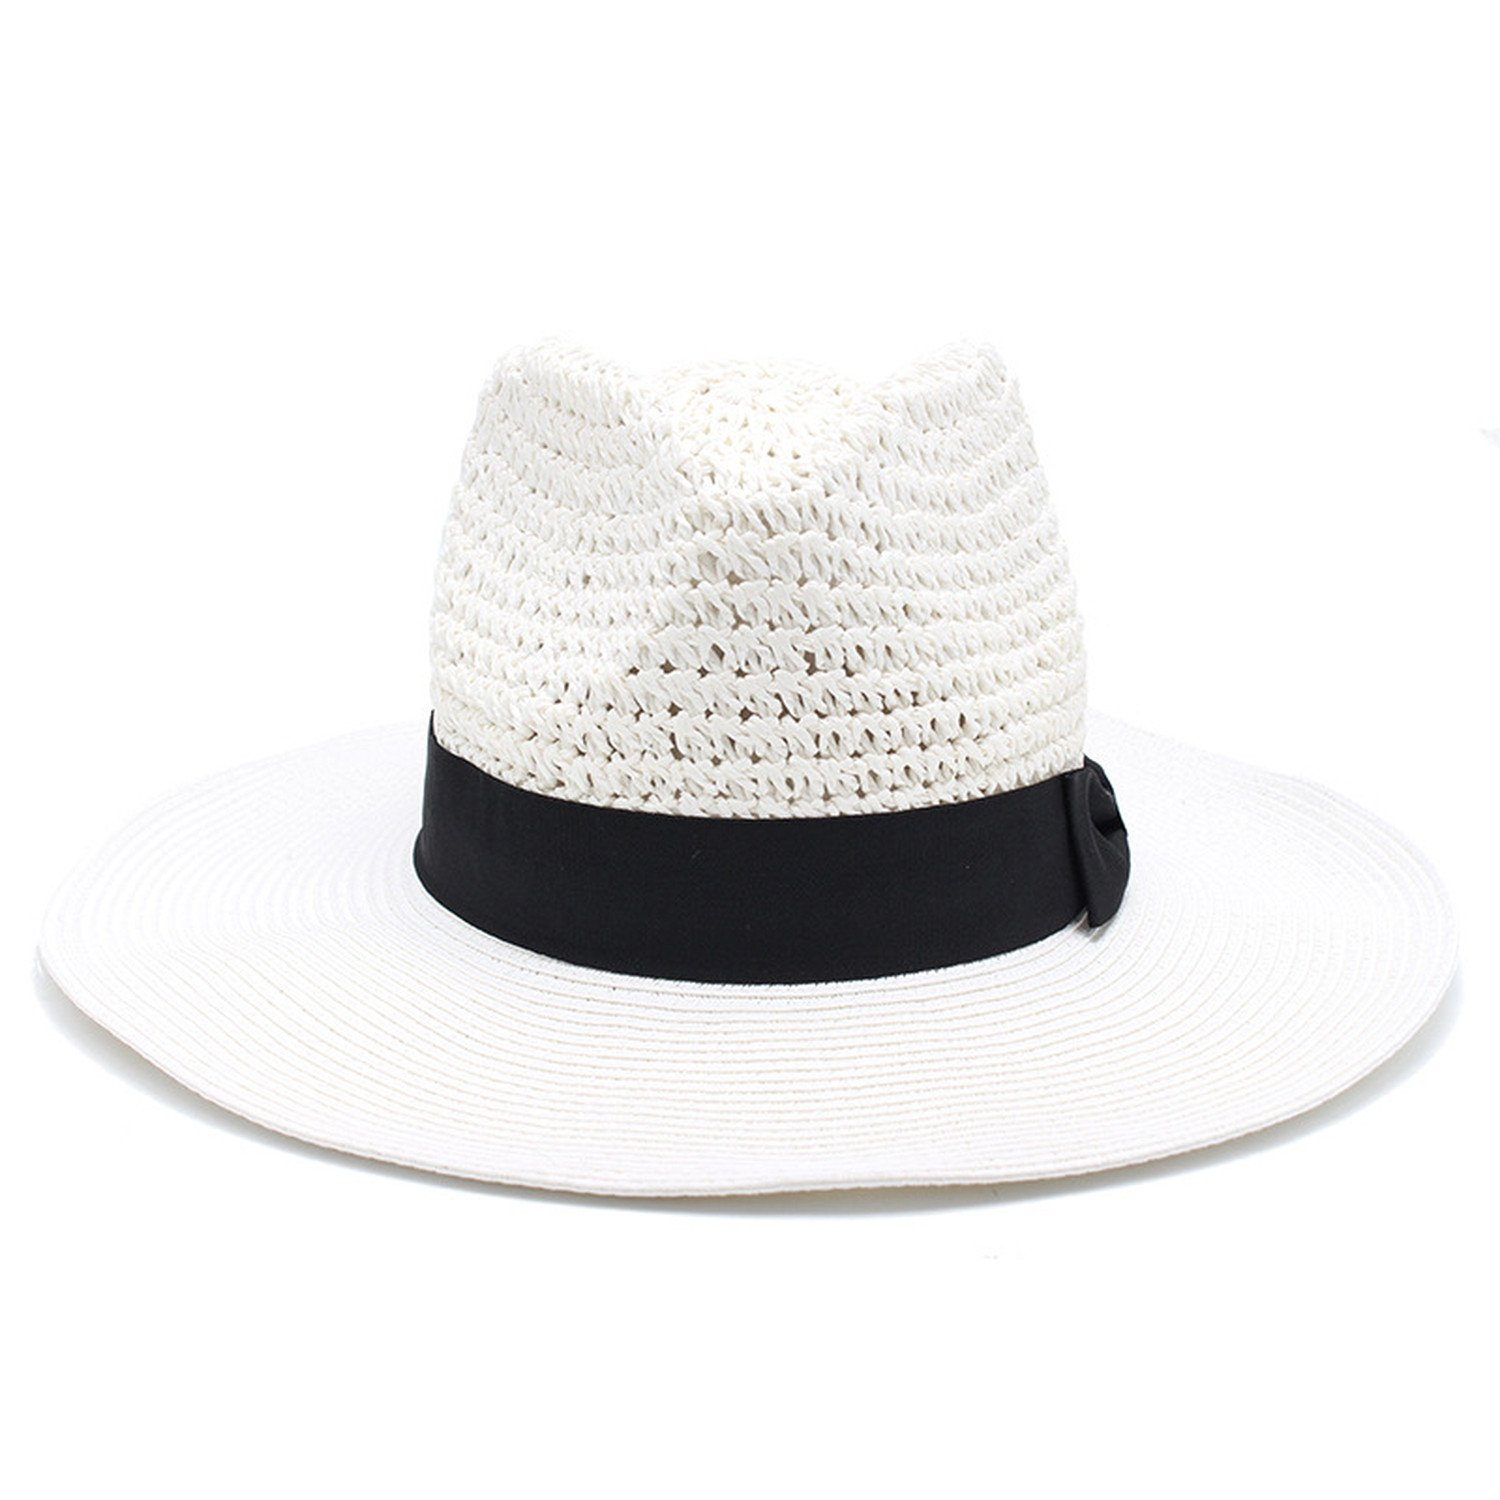 2018 verano europeo y americano de la moda ganchillo jazz hat hombres y mujeres arco negro decoración aliexpress fuente,Blanco,Ajustable: Amazon.es: ...